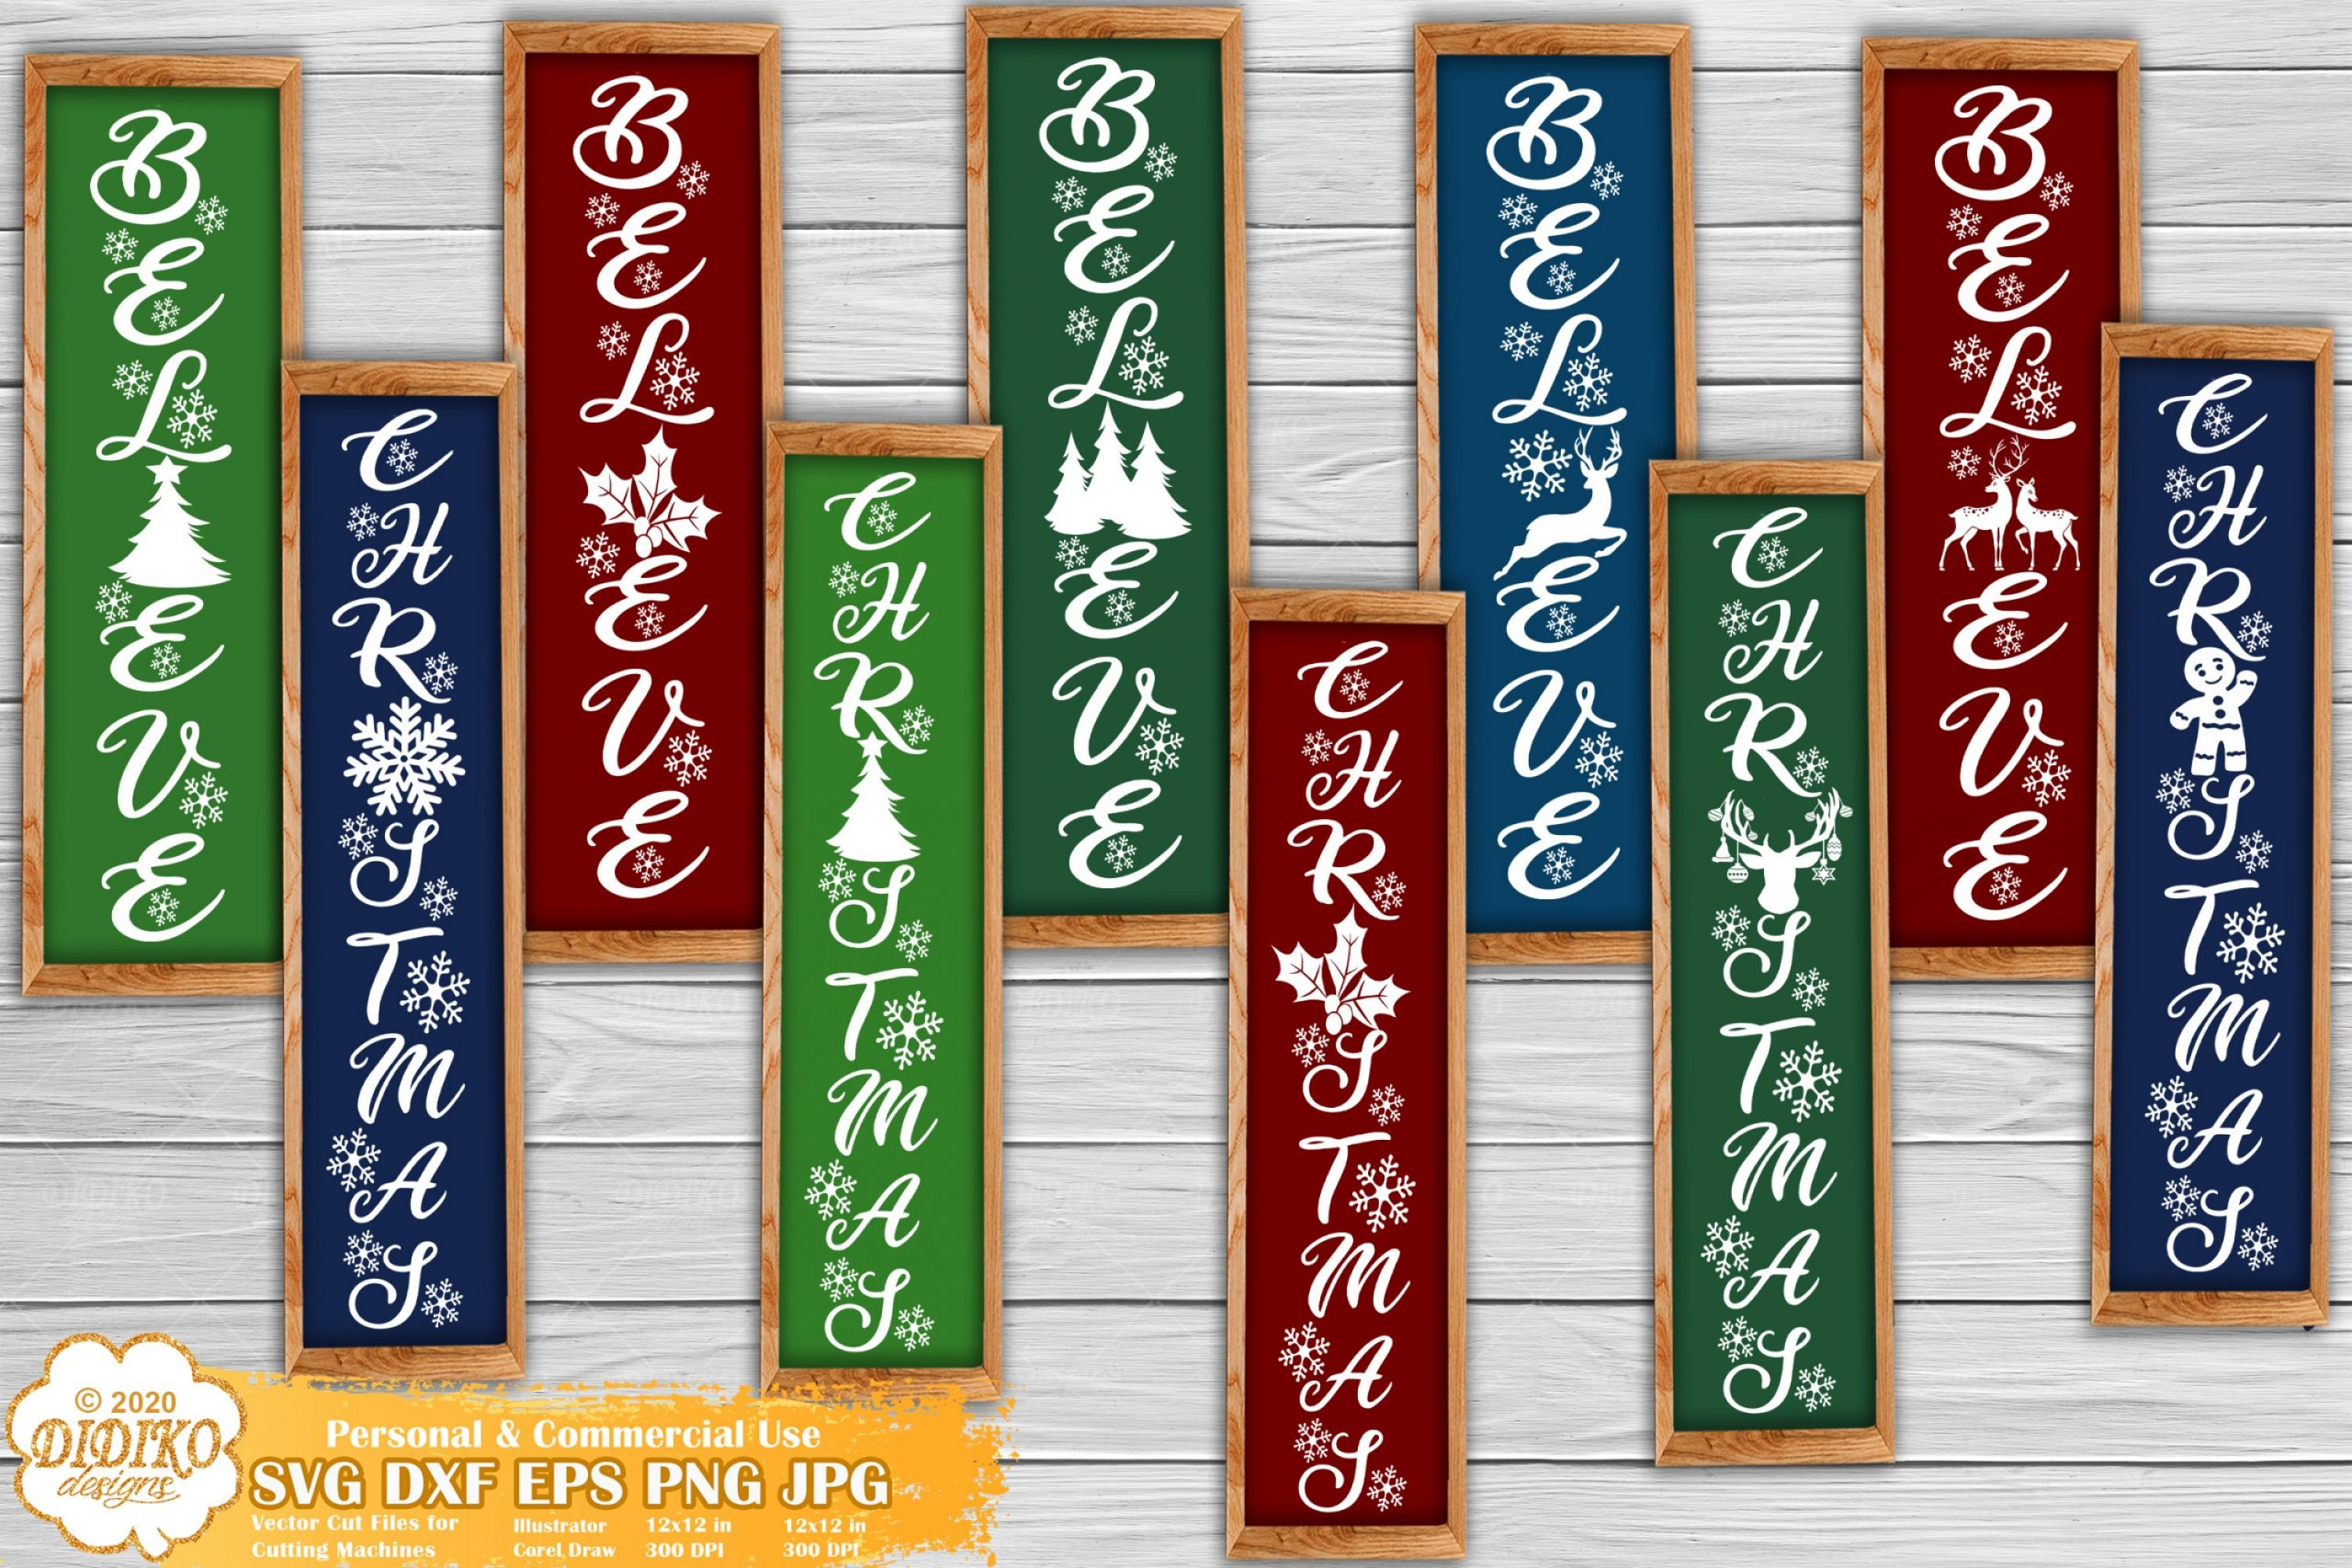 Christmas Porch Sign SVG Bundle #1 | Christmas SVG